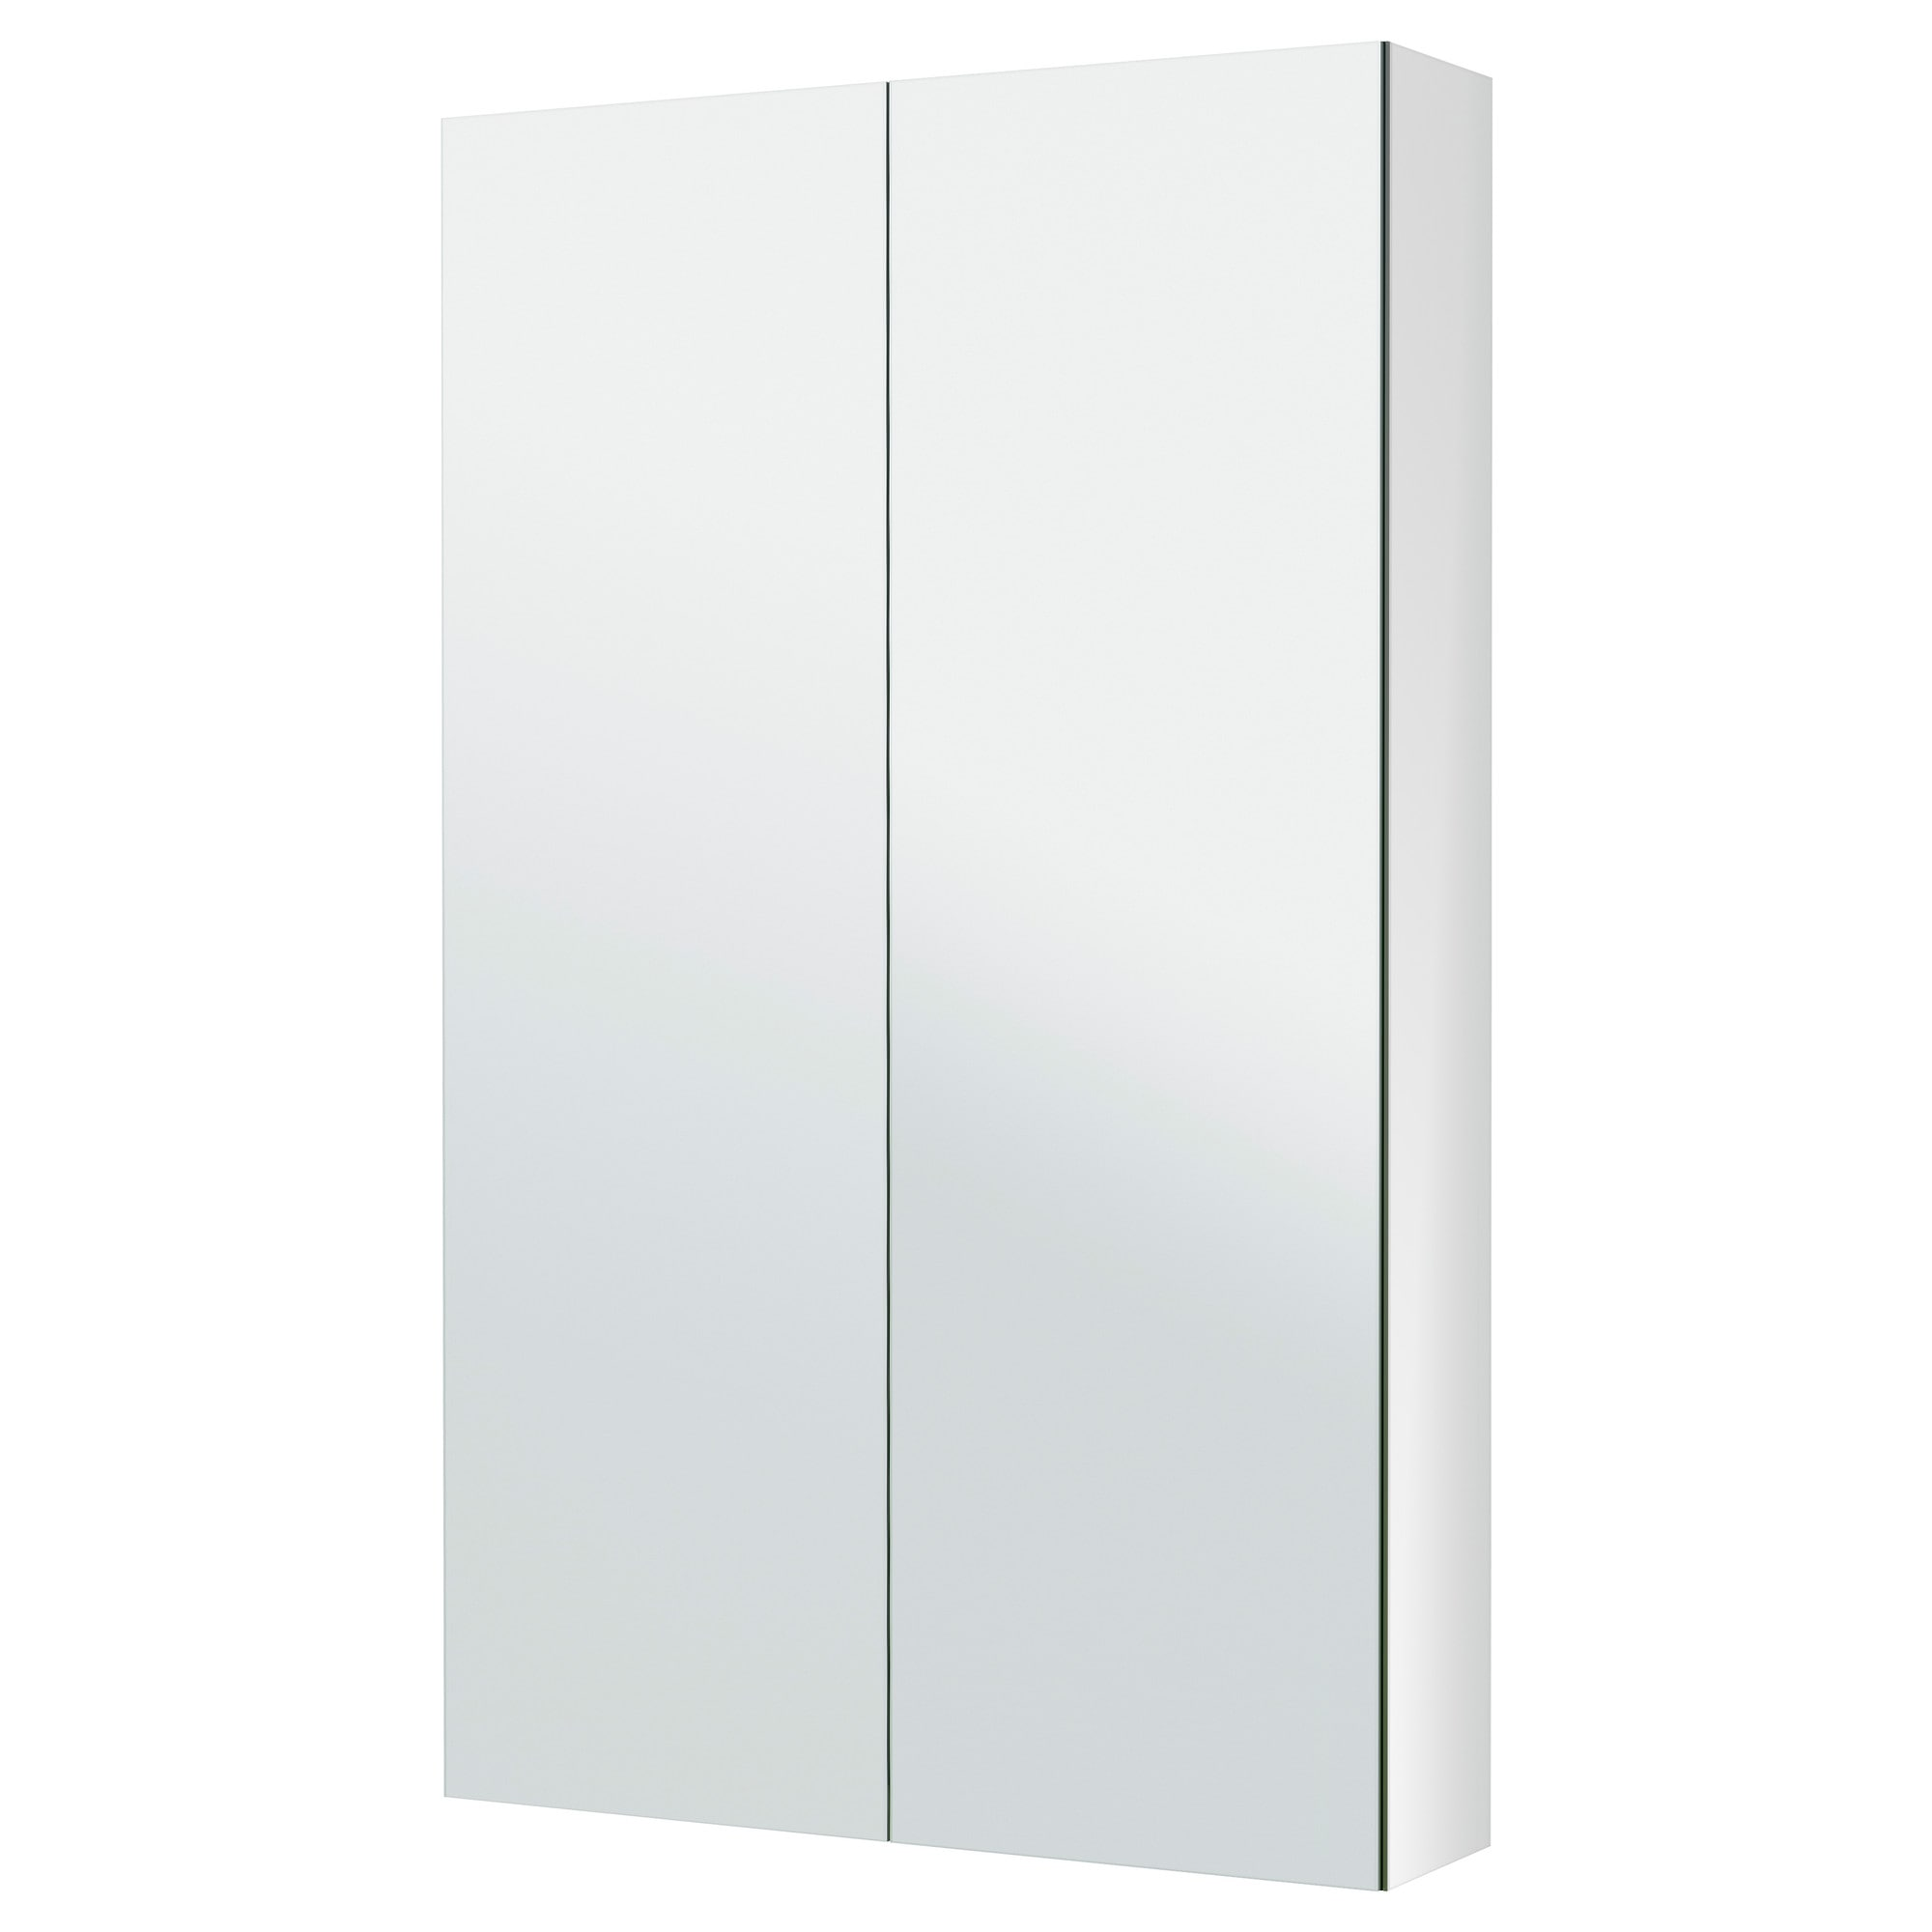 Ikea Bathroom Cabinet Doors living room list of things design